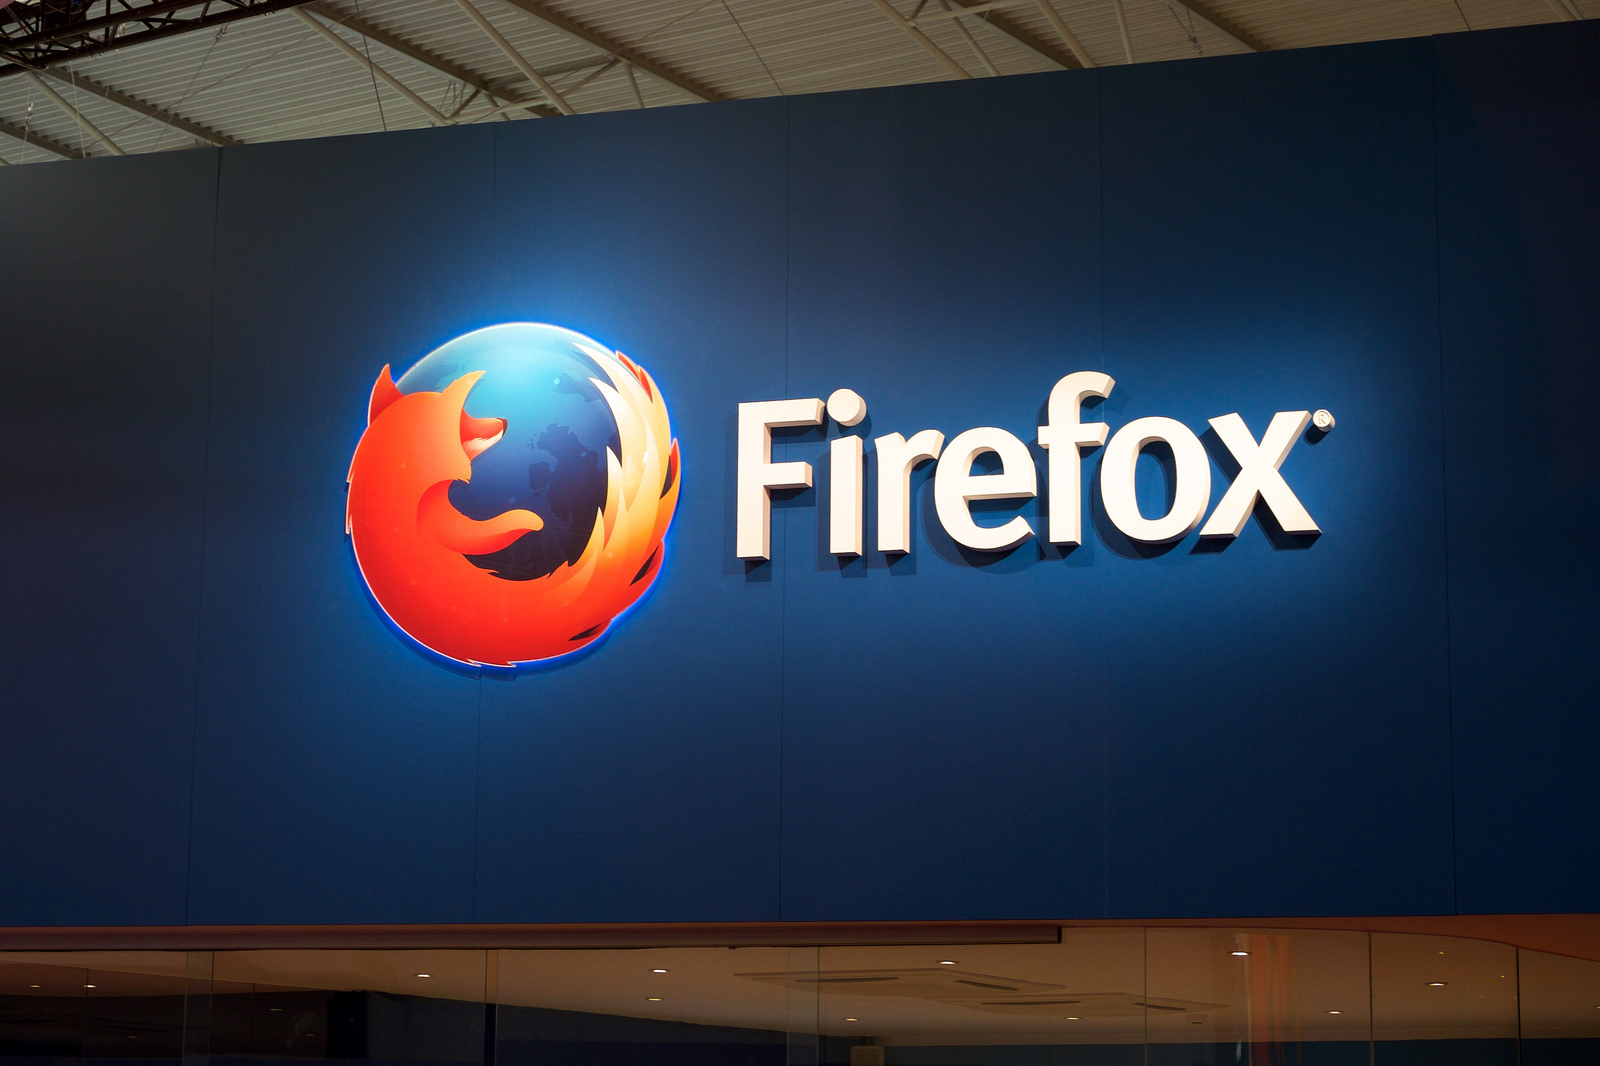 Firefox's solution to stop Facebook from spying on you